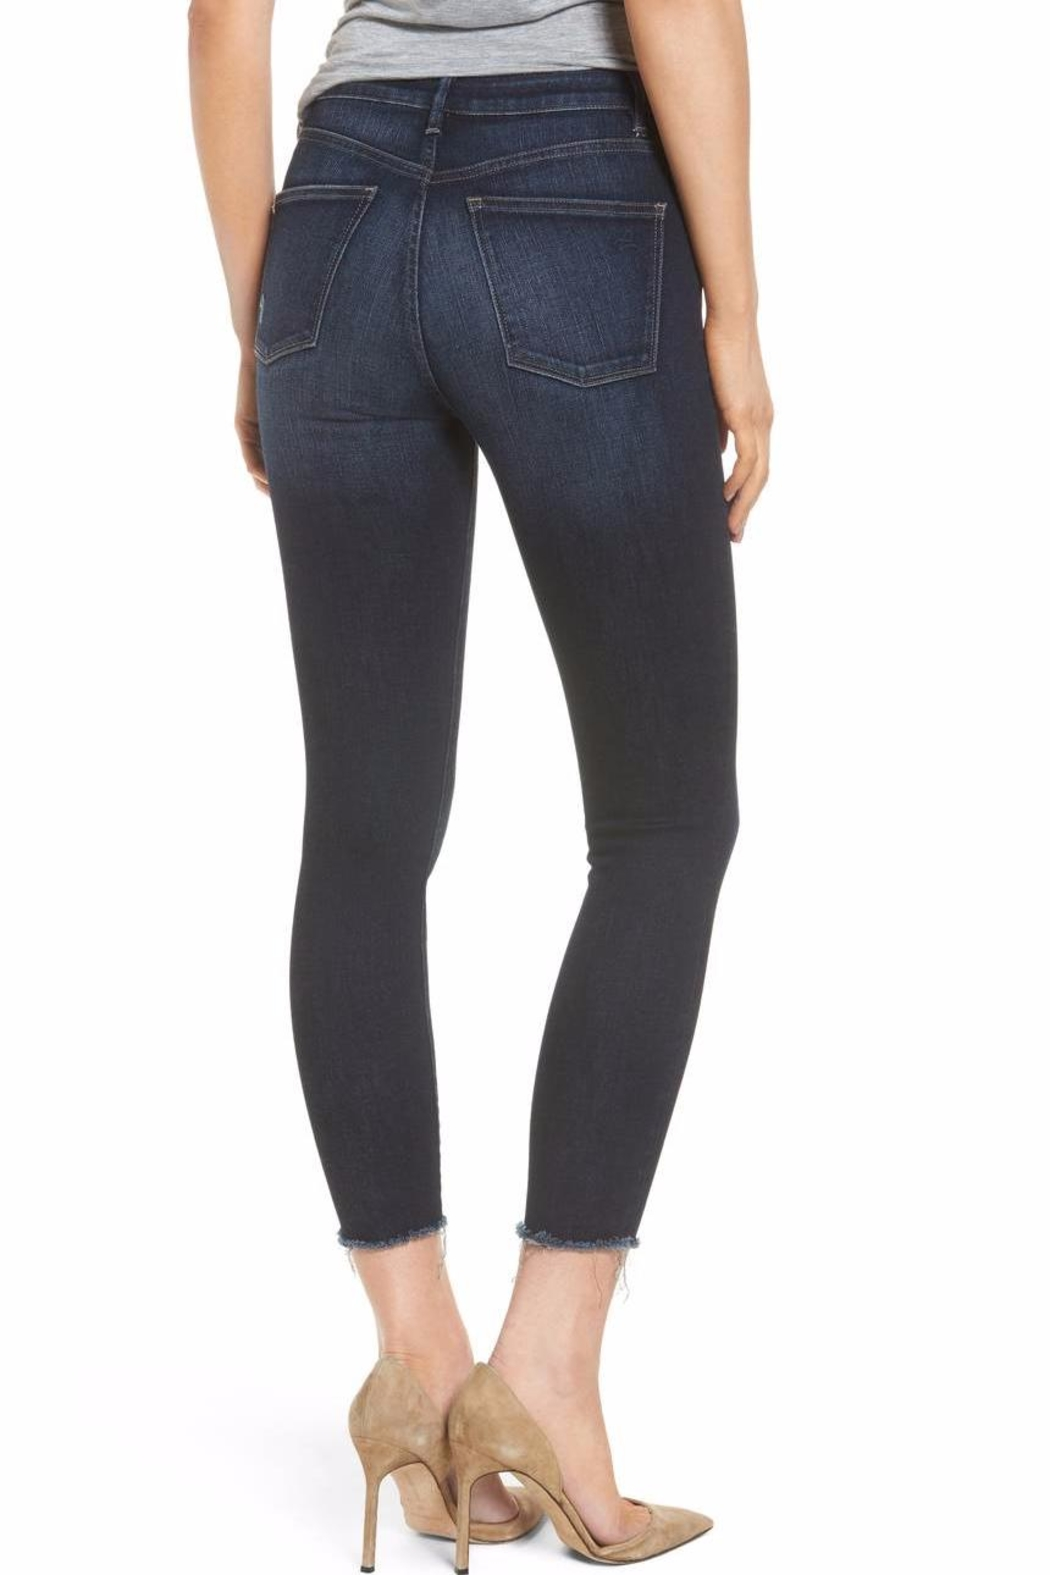 DL1961 Chrissy High Rise Jeans - Front Full Image